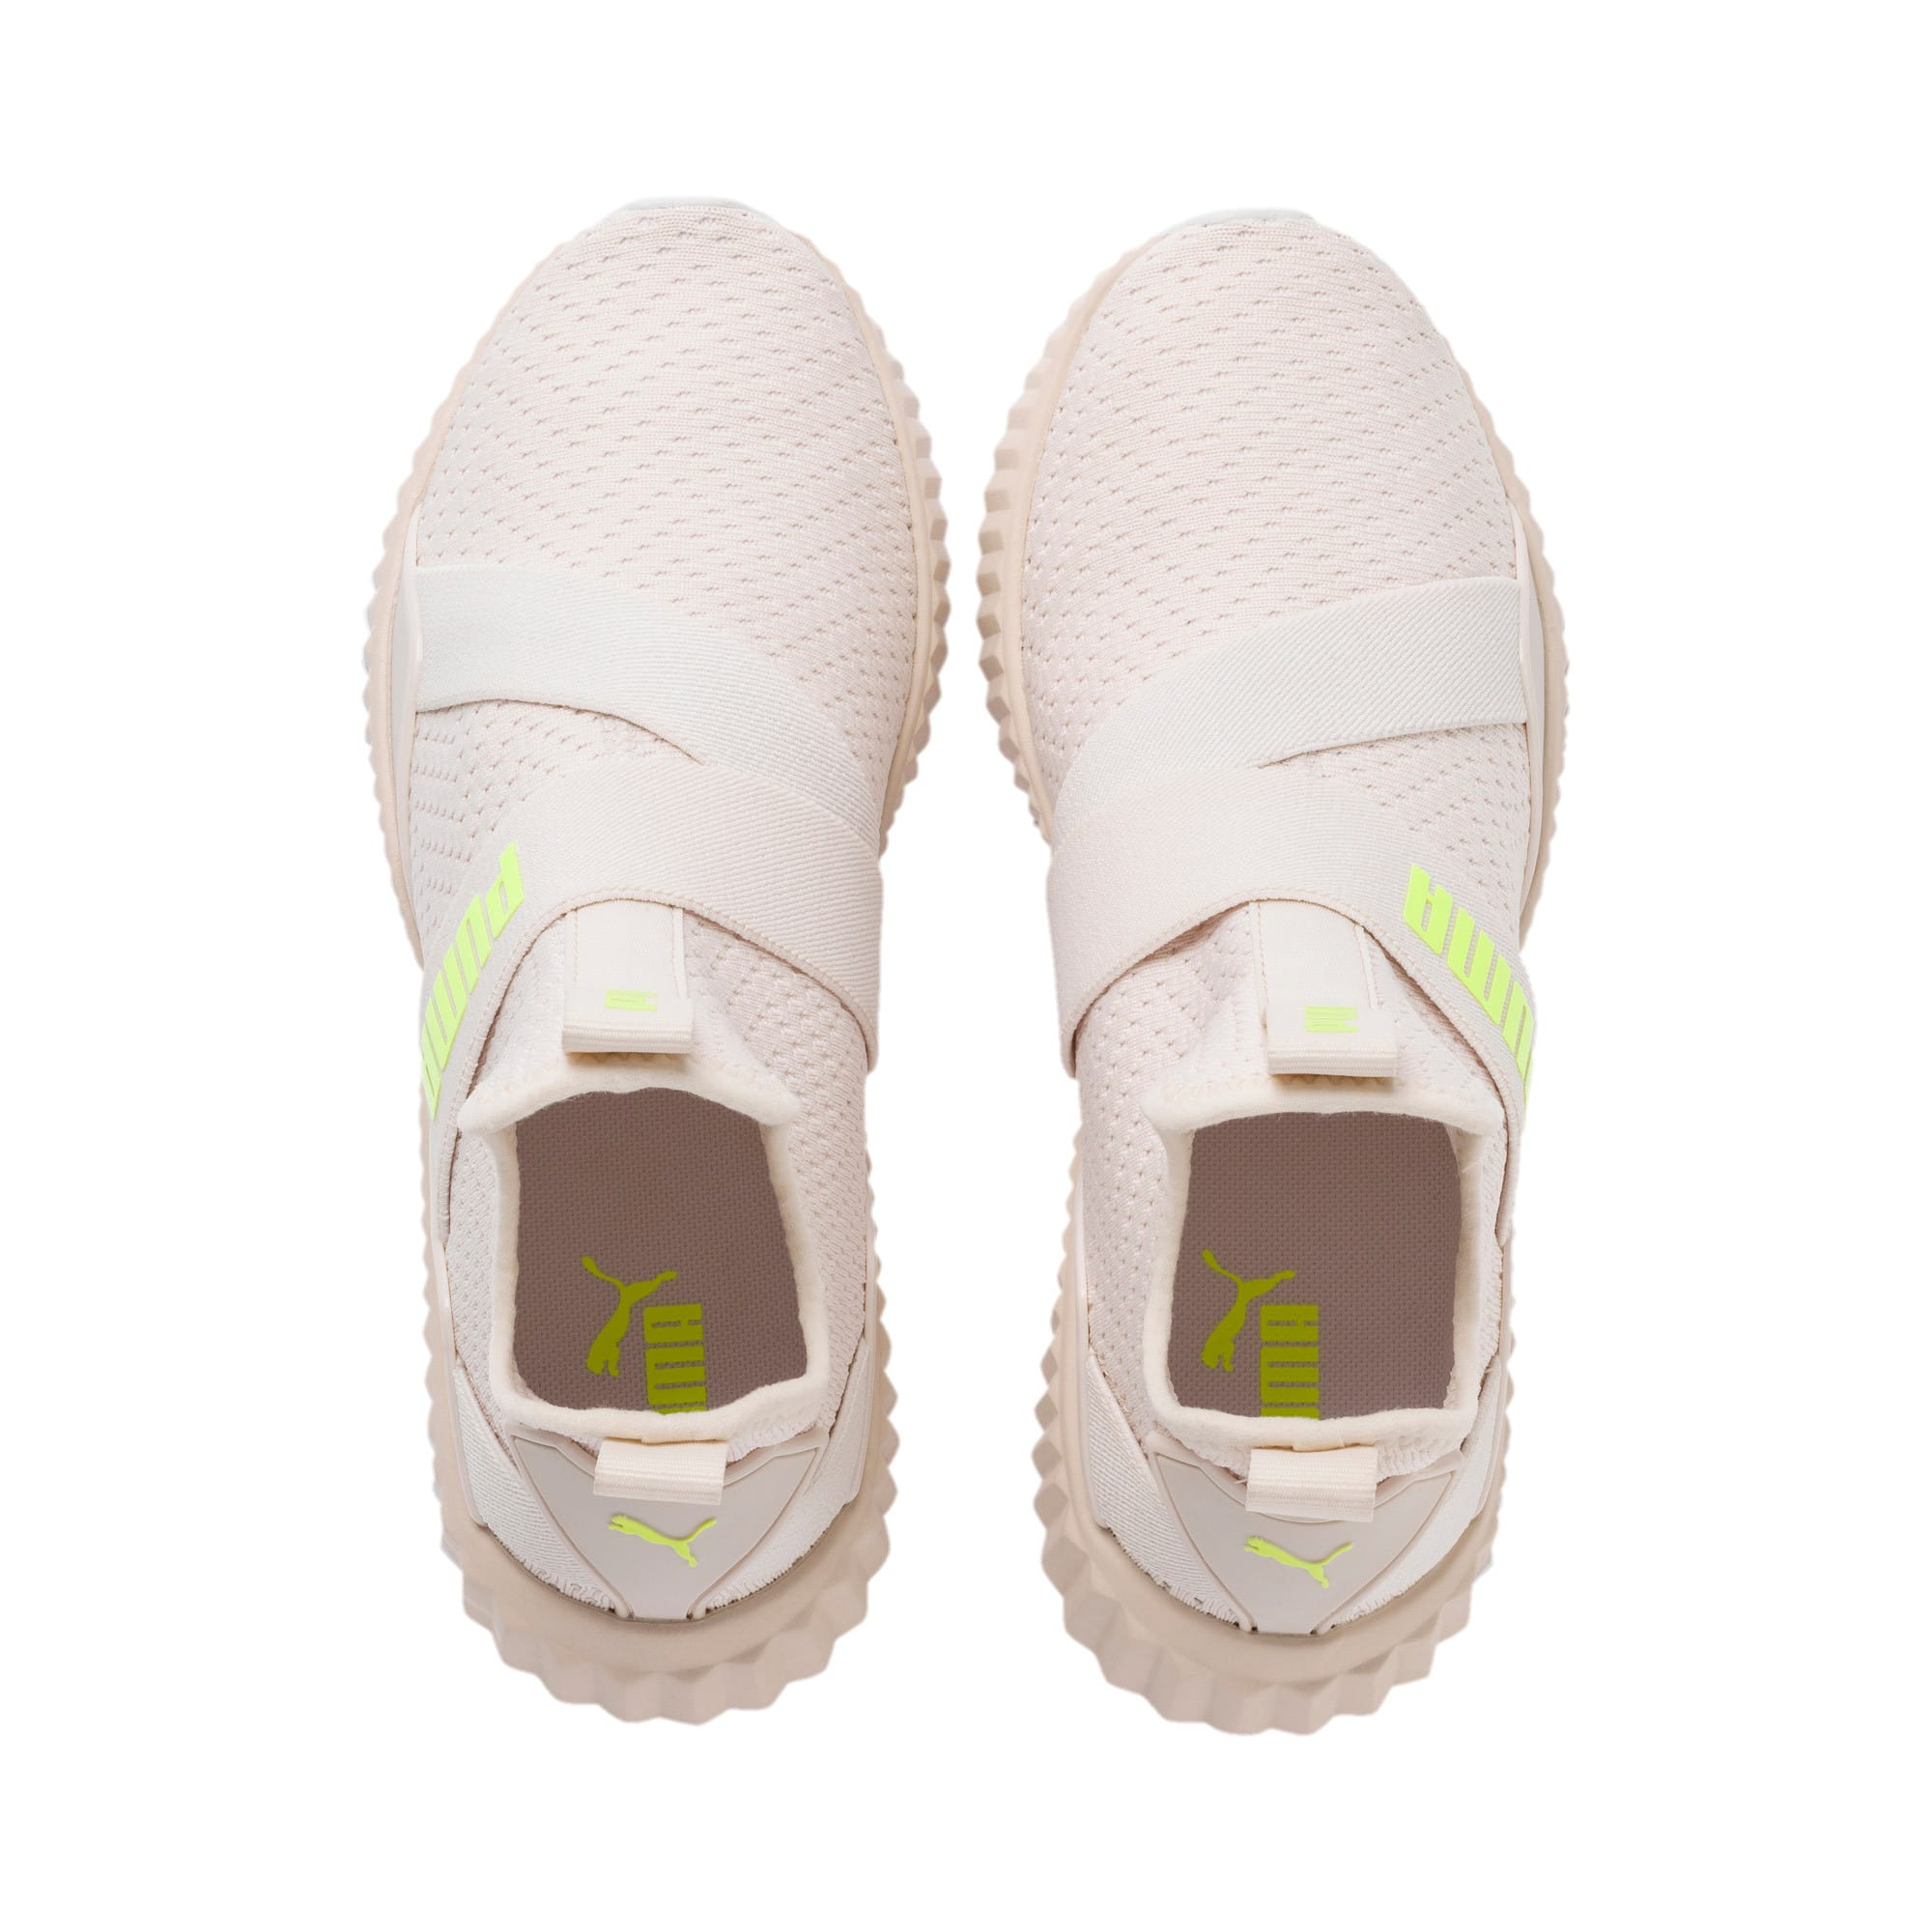 Thumbnail 7 of Defy Mid Core Women's Trainers, Pastel Parchment-Puma White, medium-IND